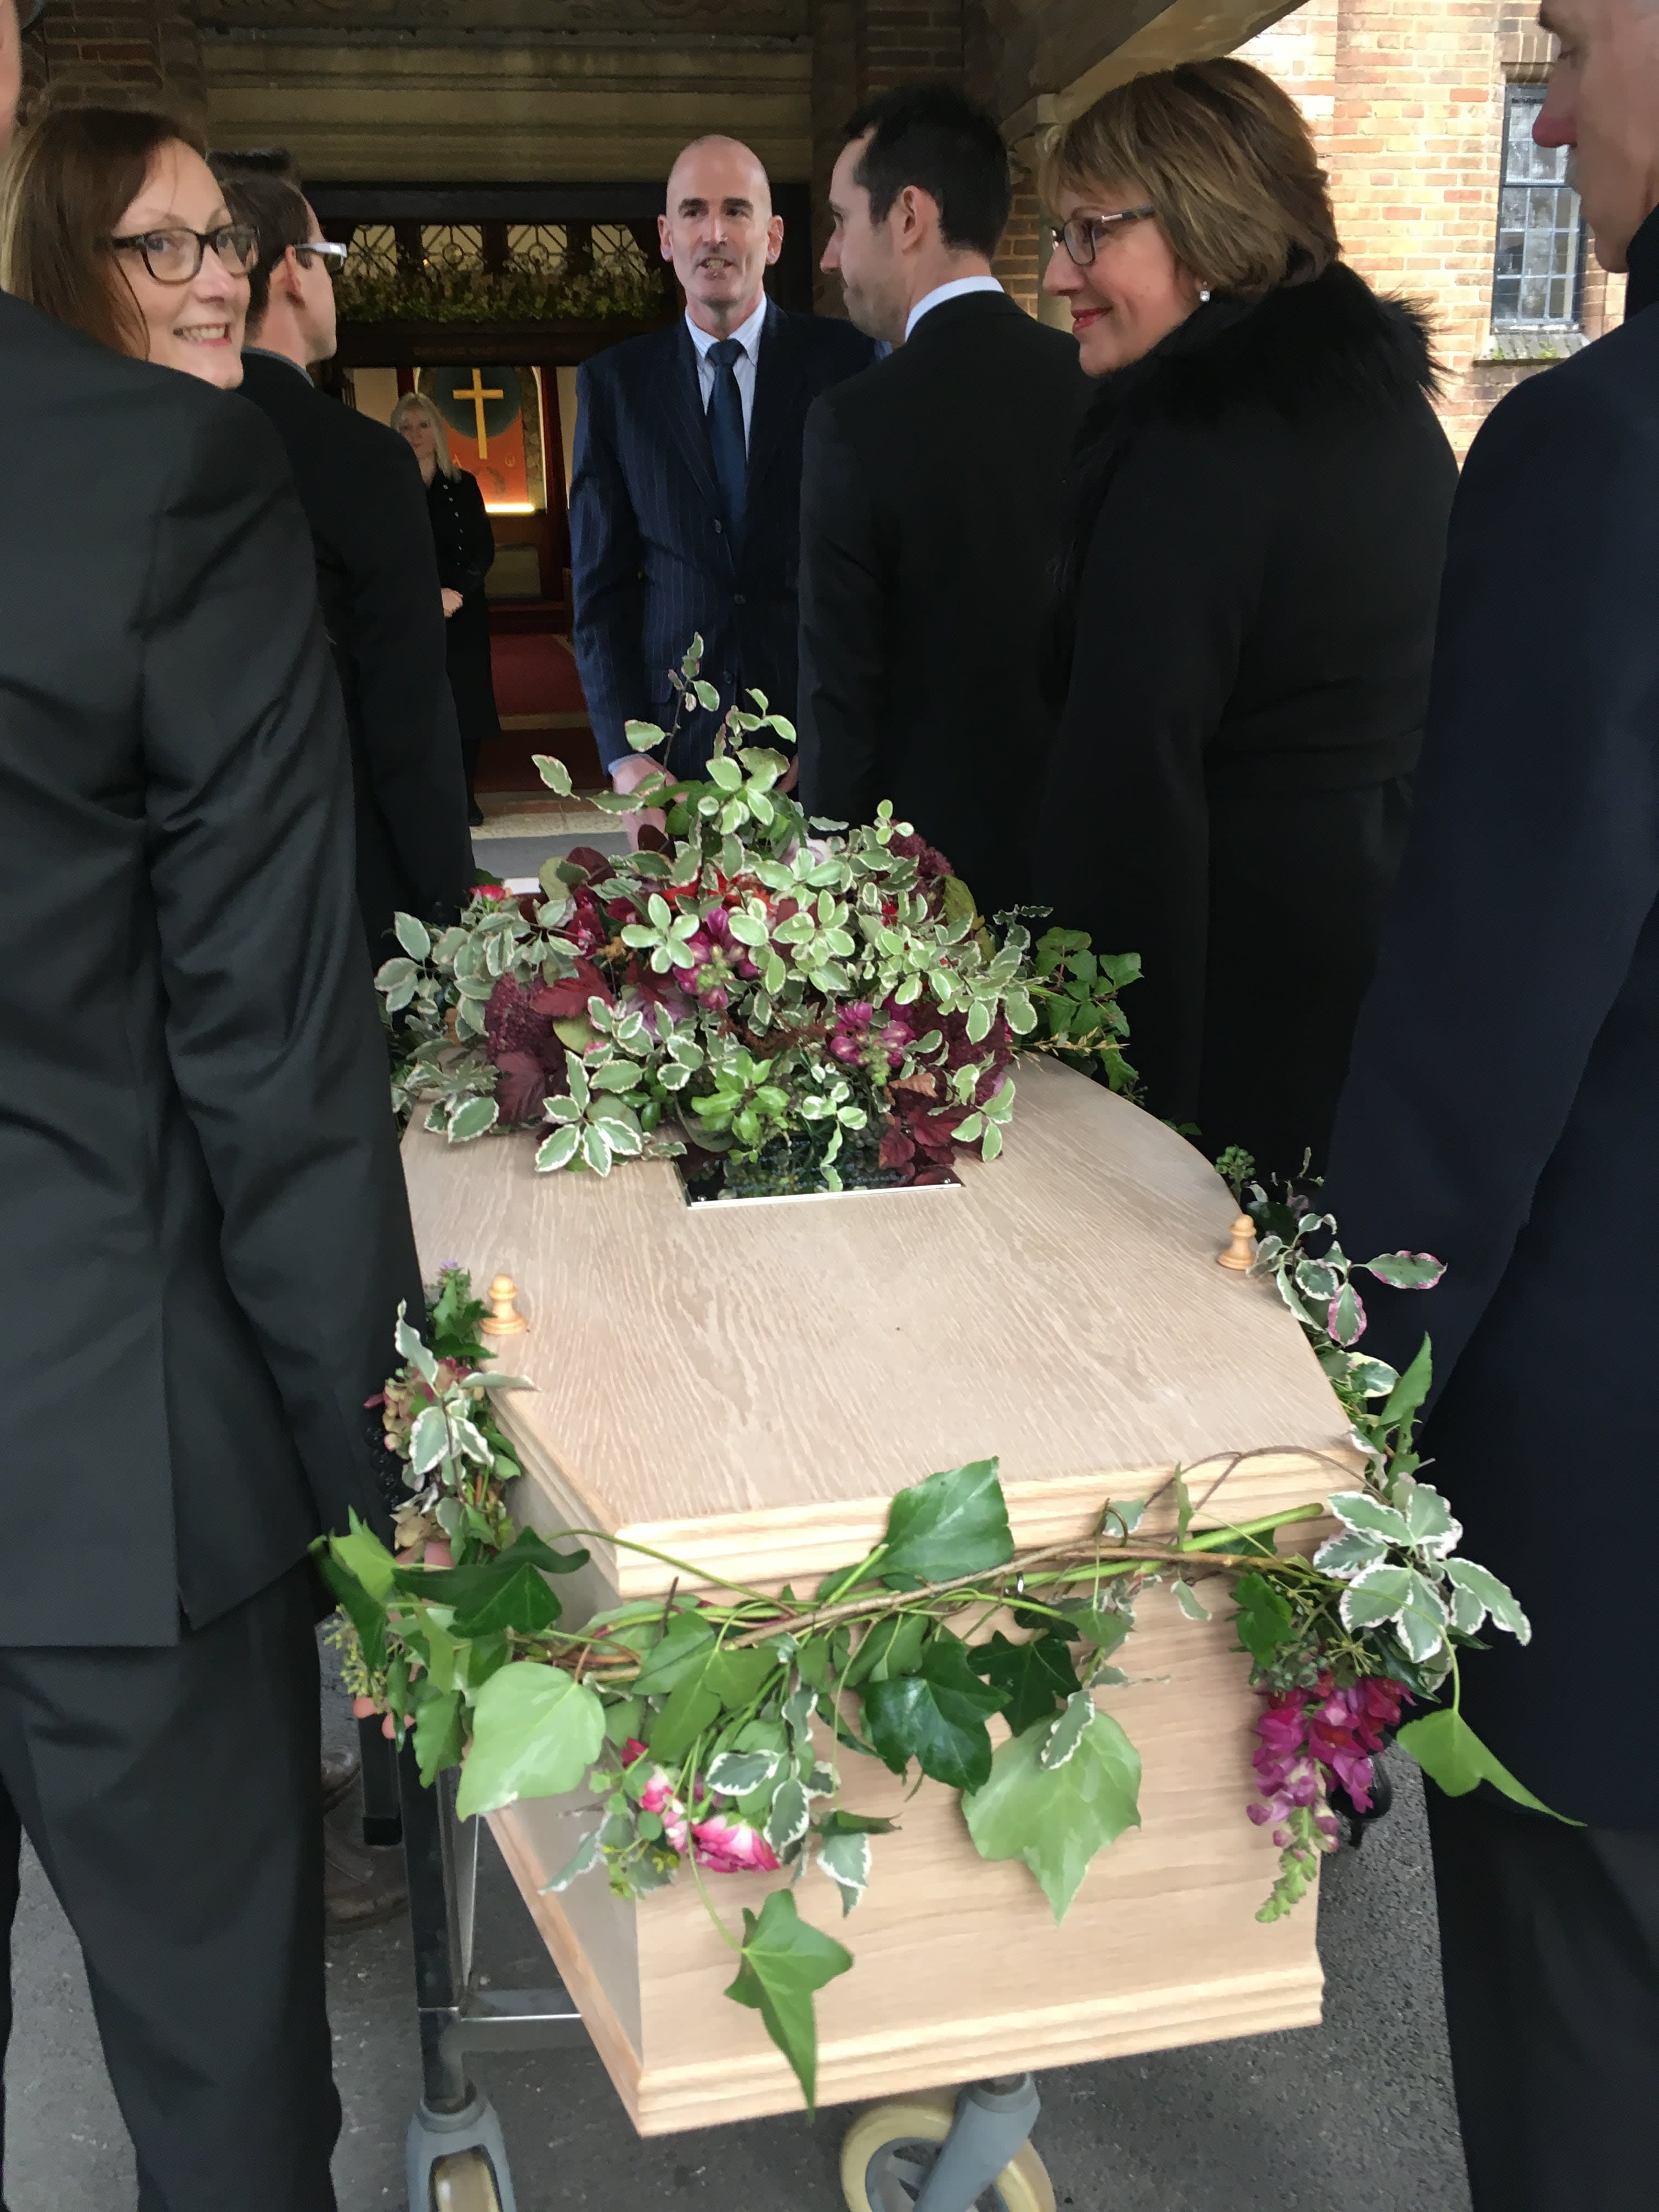 The funeral industry is being investigated by the Government